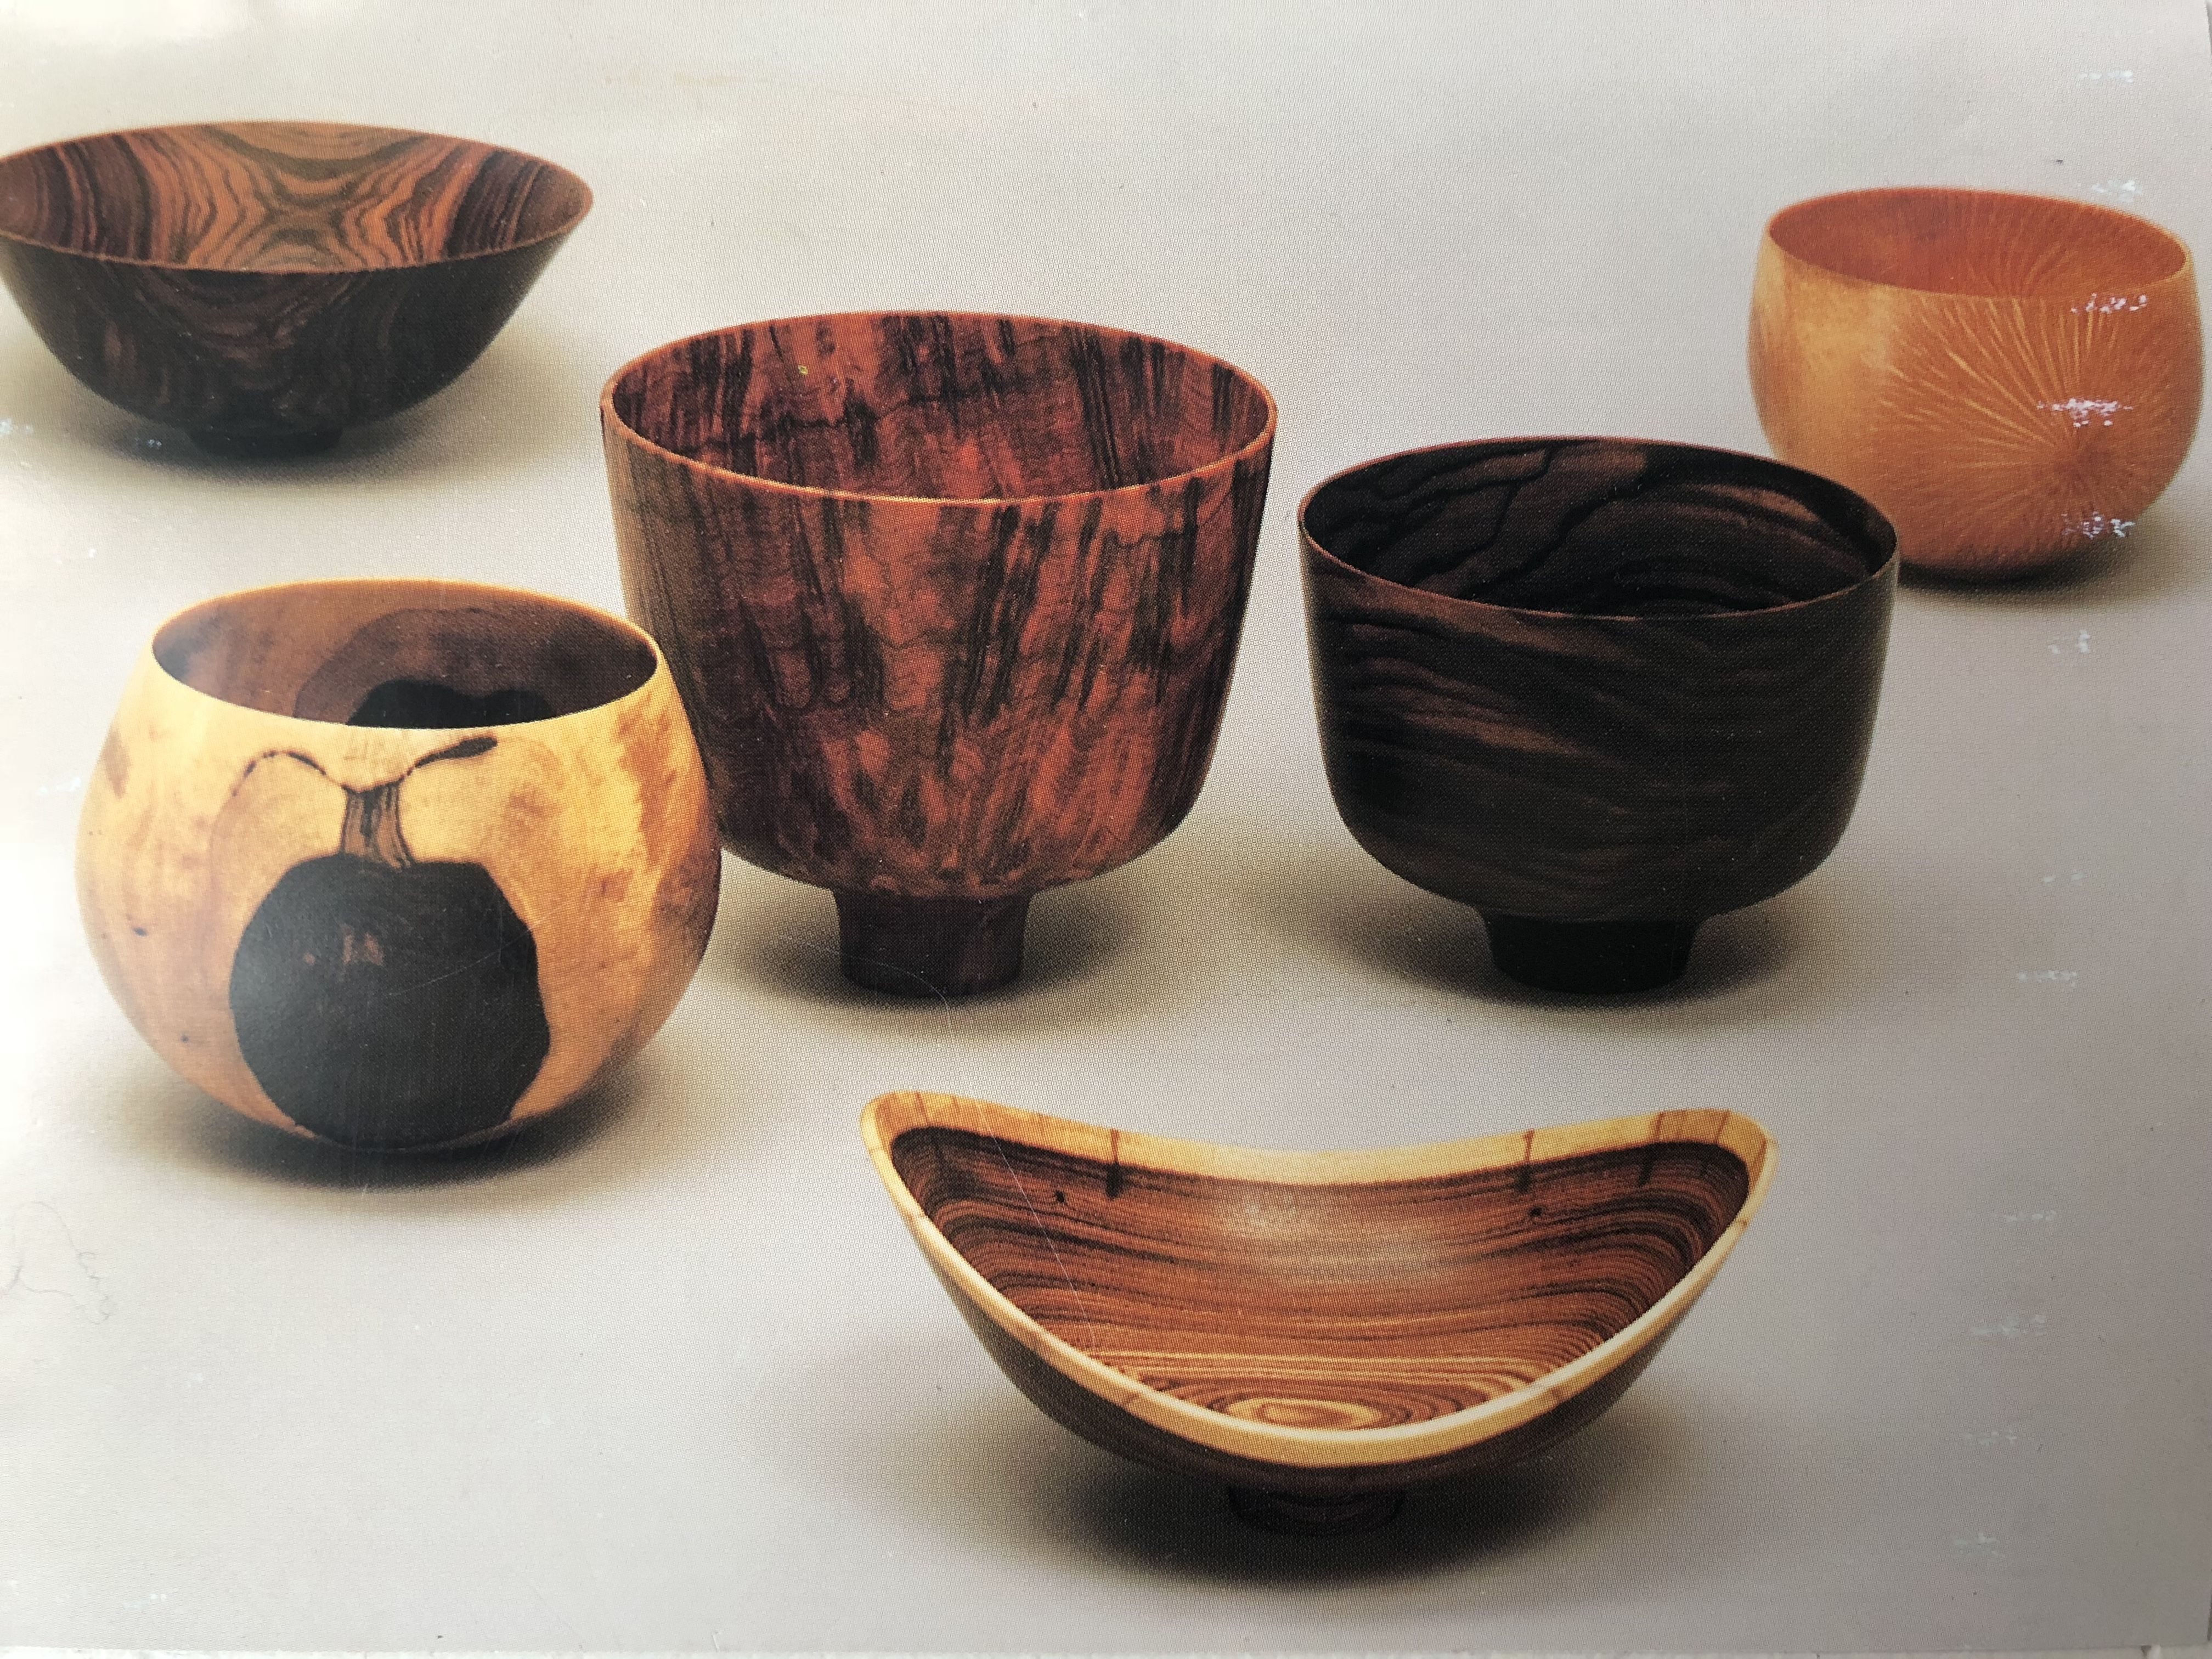 Bob Stocksdale's Famous Wooden Bowls Lived On The Shelves